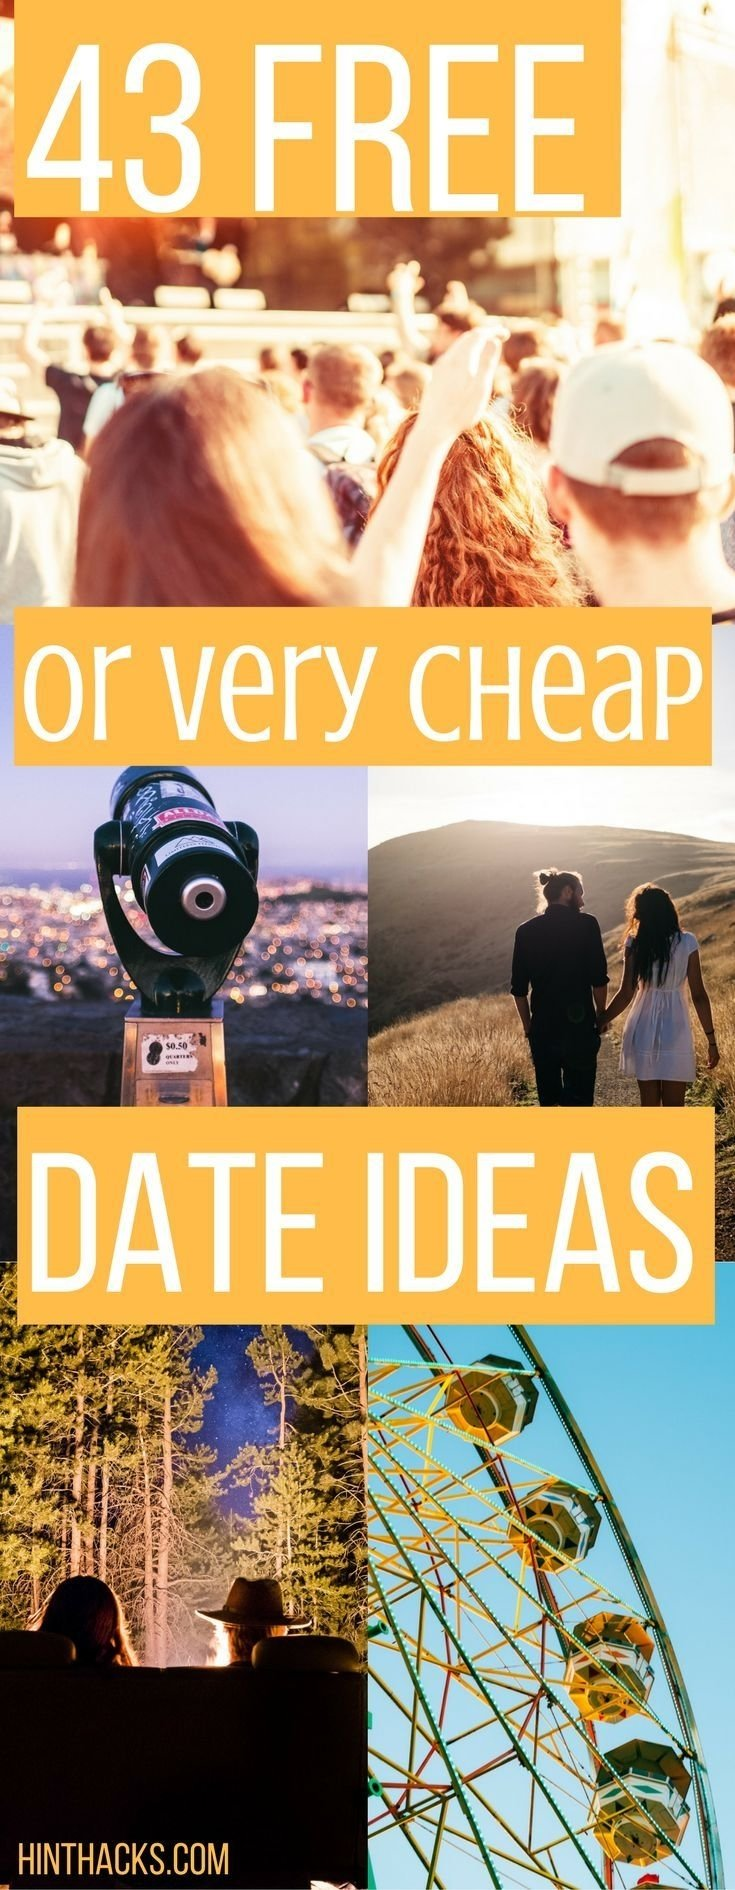 10 Nice First Date Ideas For College Students 43 free or really cheap date ideas budgeting college and students 2020